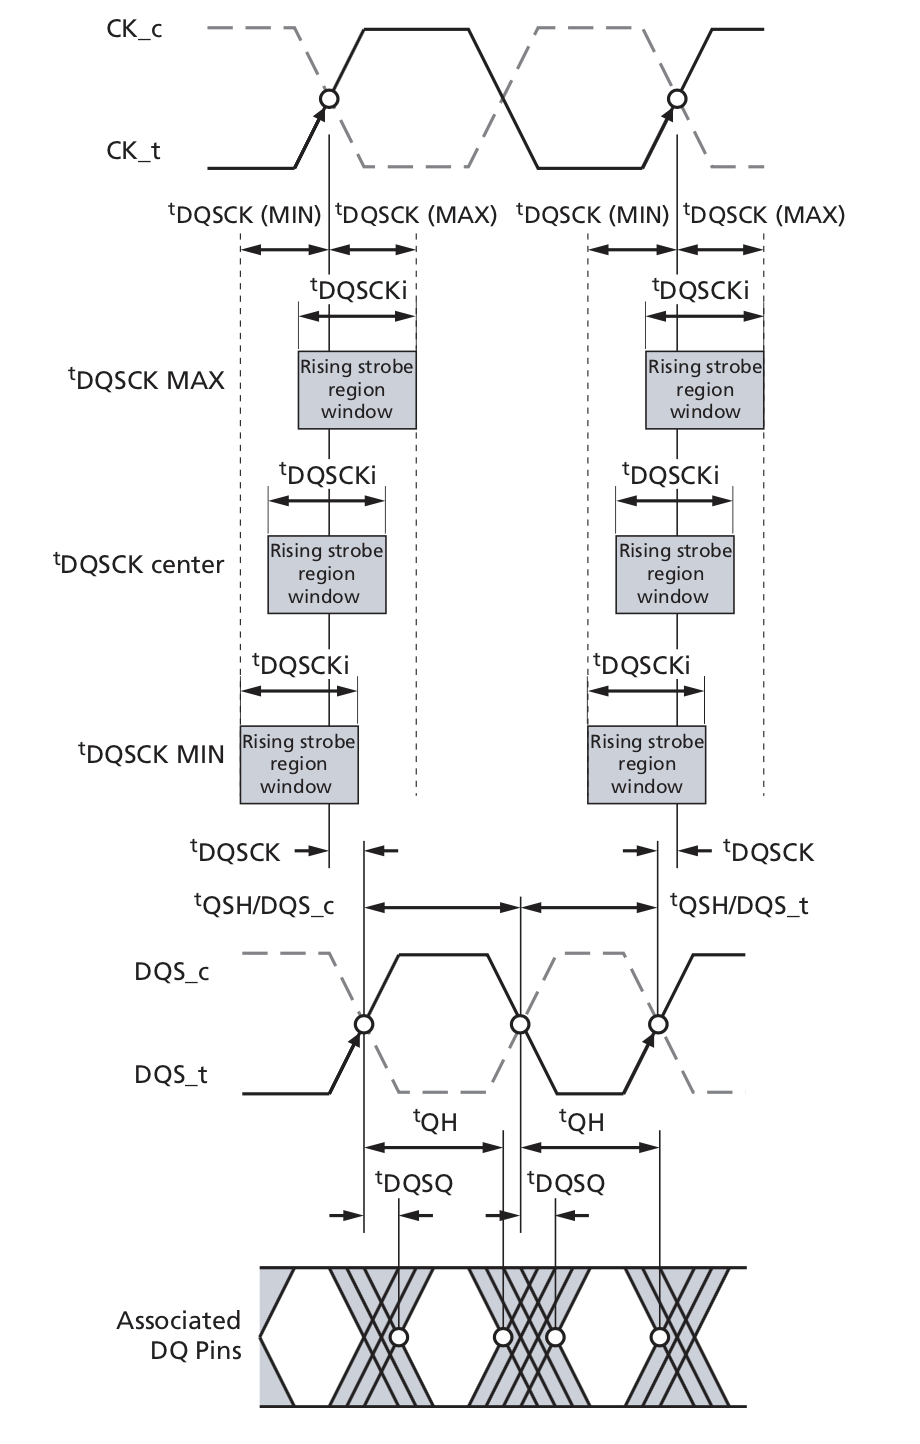 ddr4-timing-read-ck-dqs-dq.png